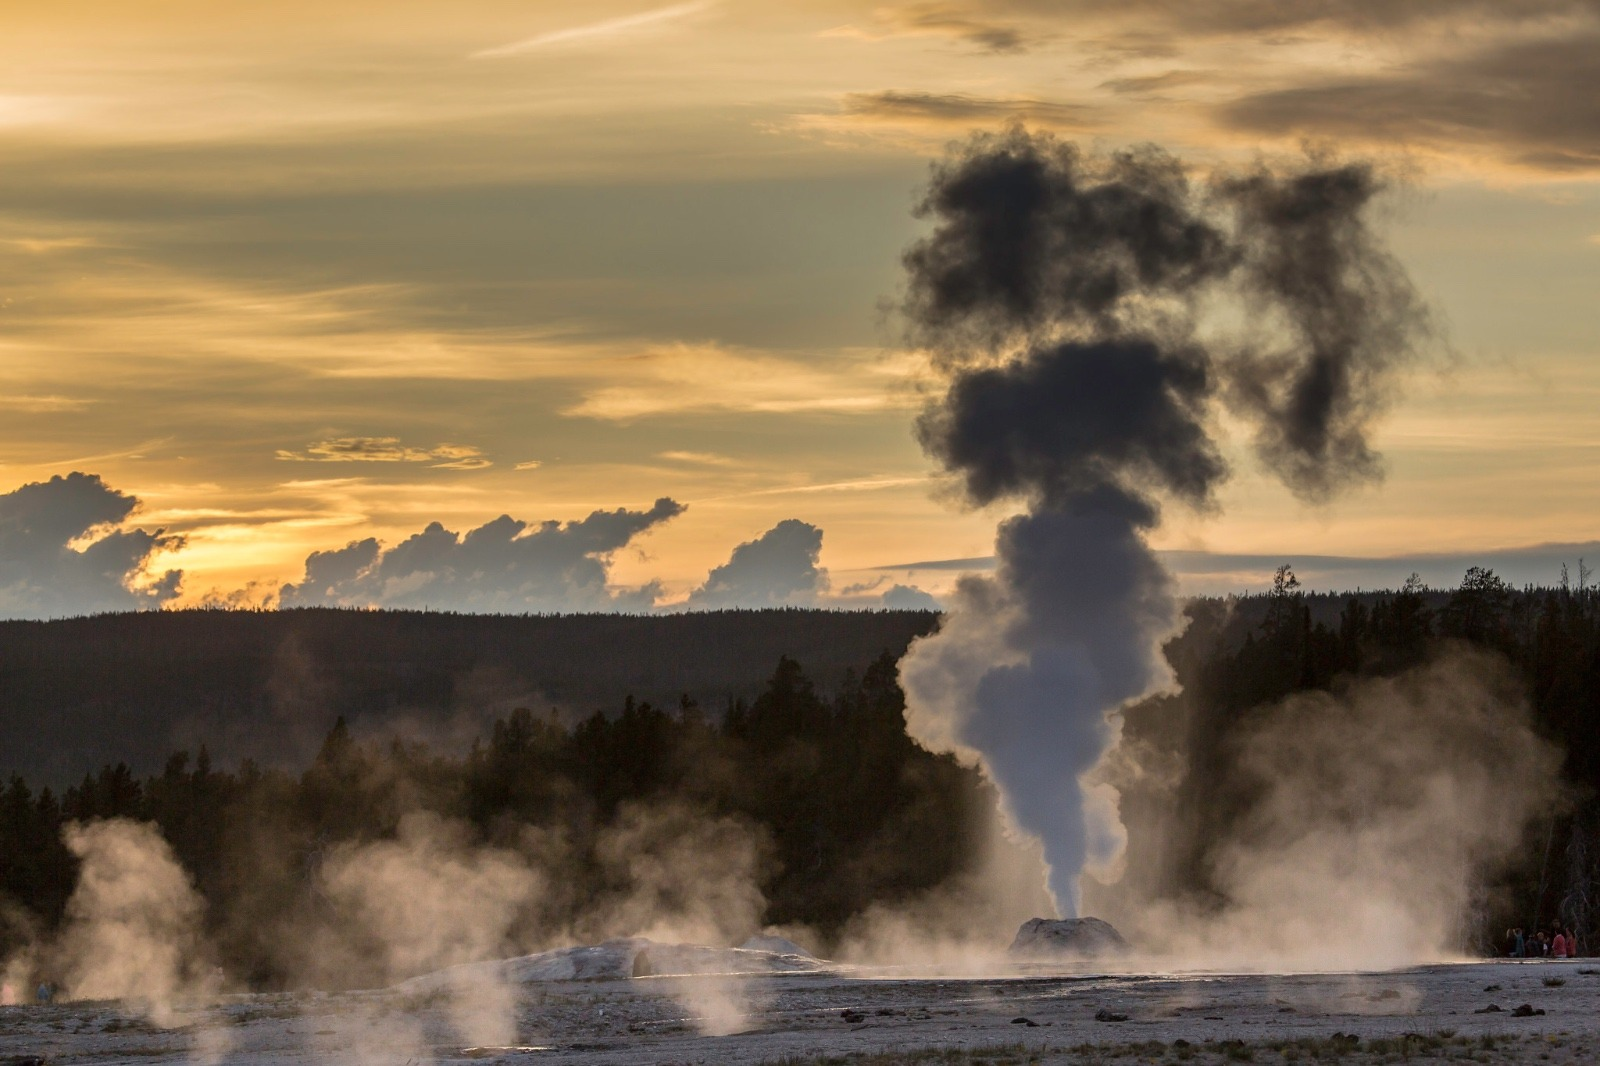 Lion Geyser at sunset, Yellowstone National Park. Photo courtesy Neal Herbert/NPS